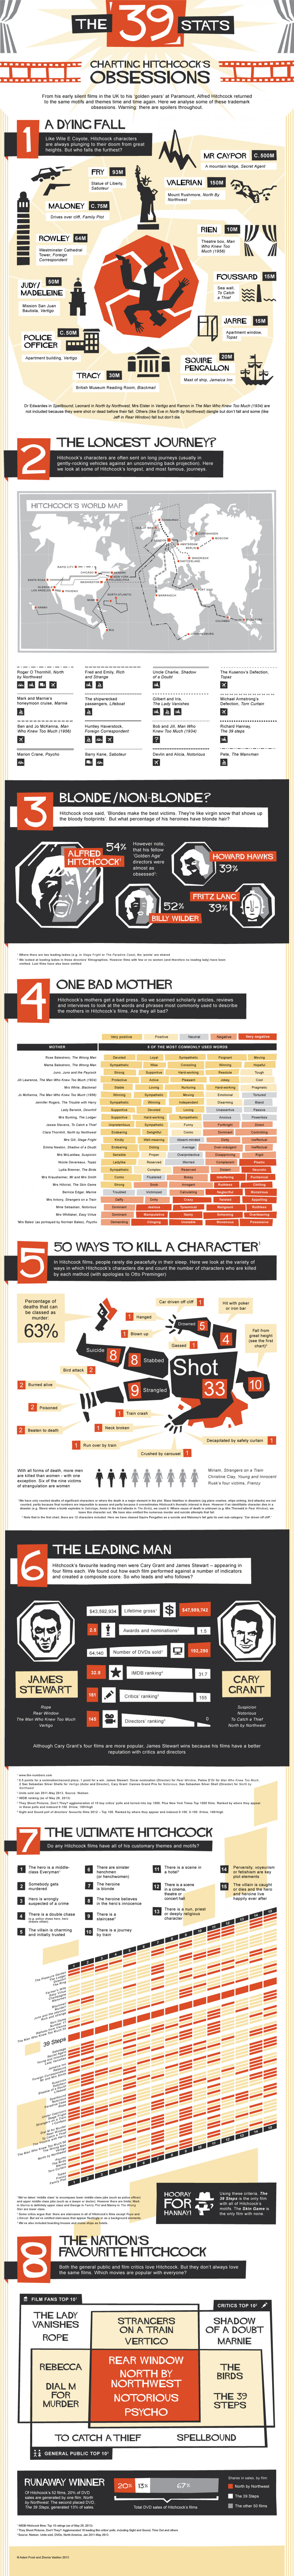 The 39 Stats Infographic